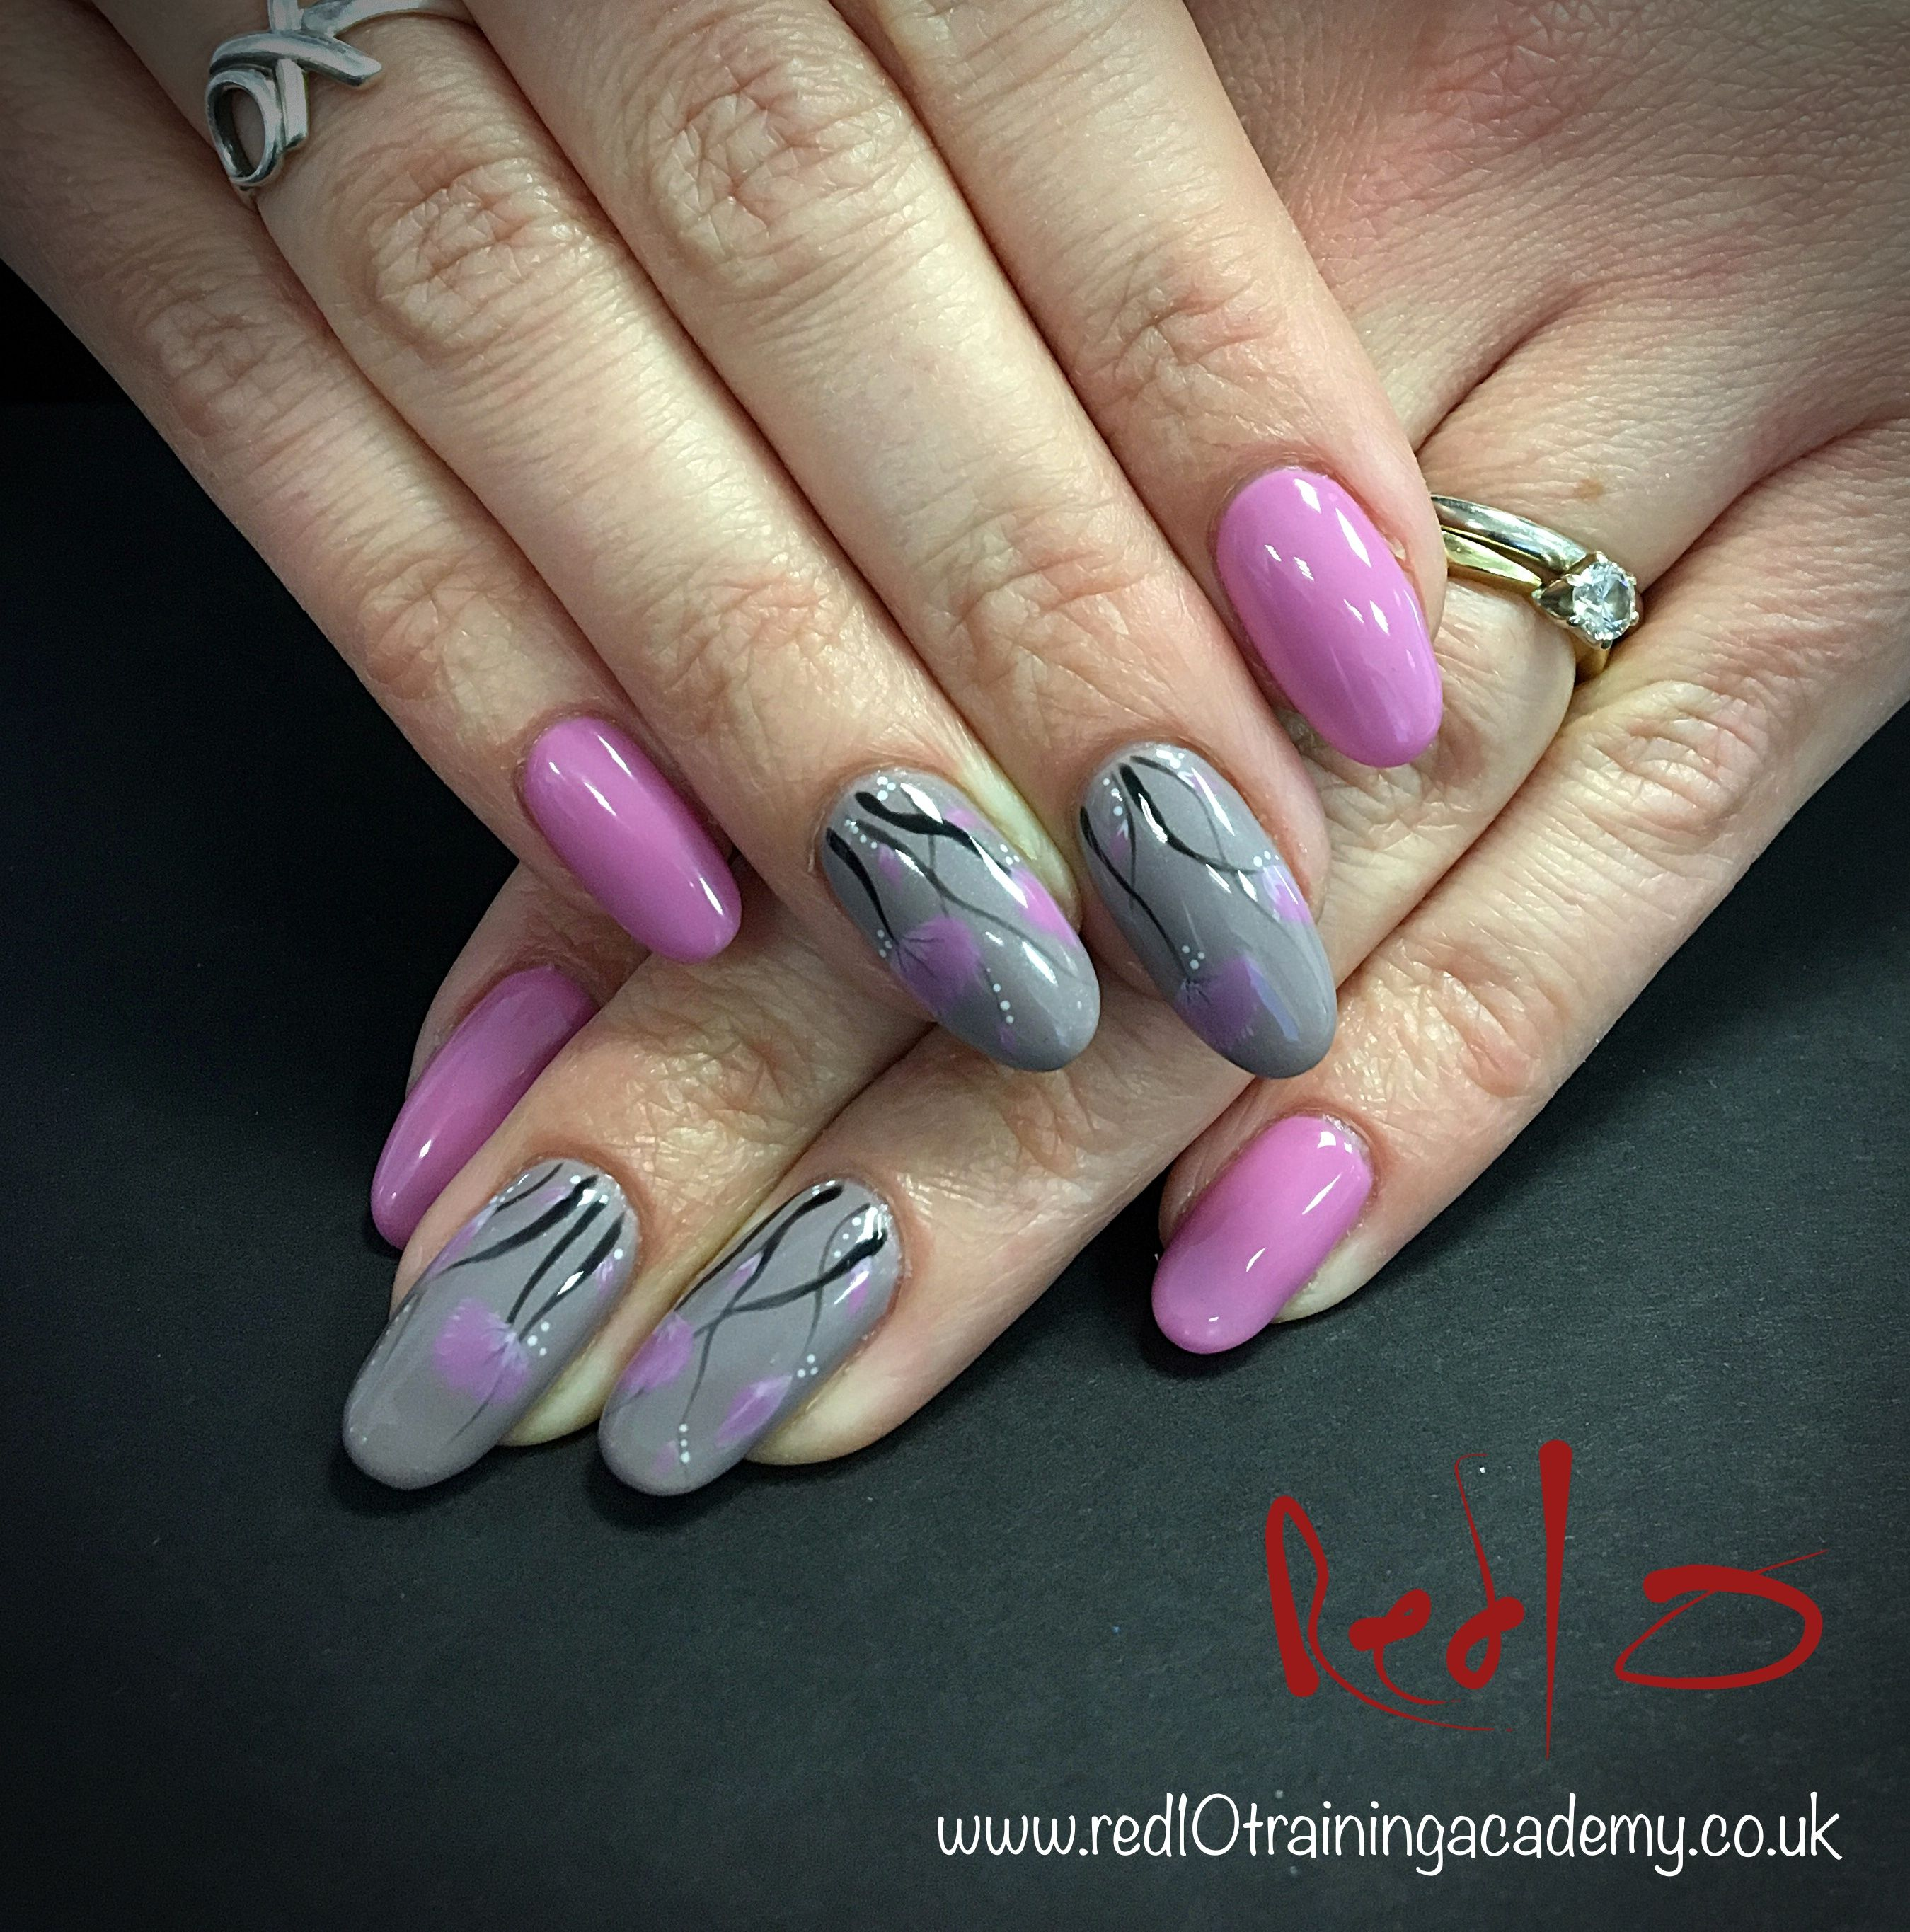 Gelish Design Nails Grey Nails Pink Nails Its A Lily From Rodeo